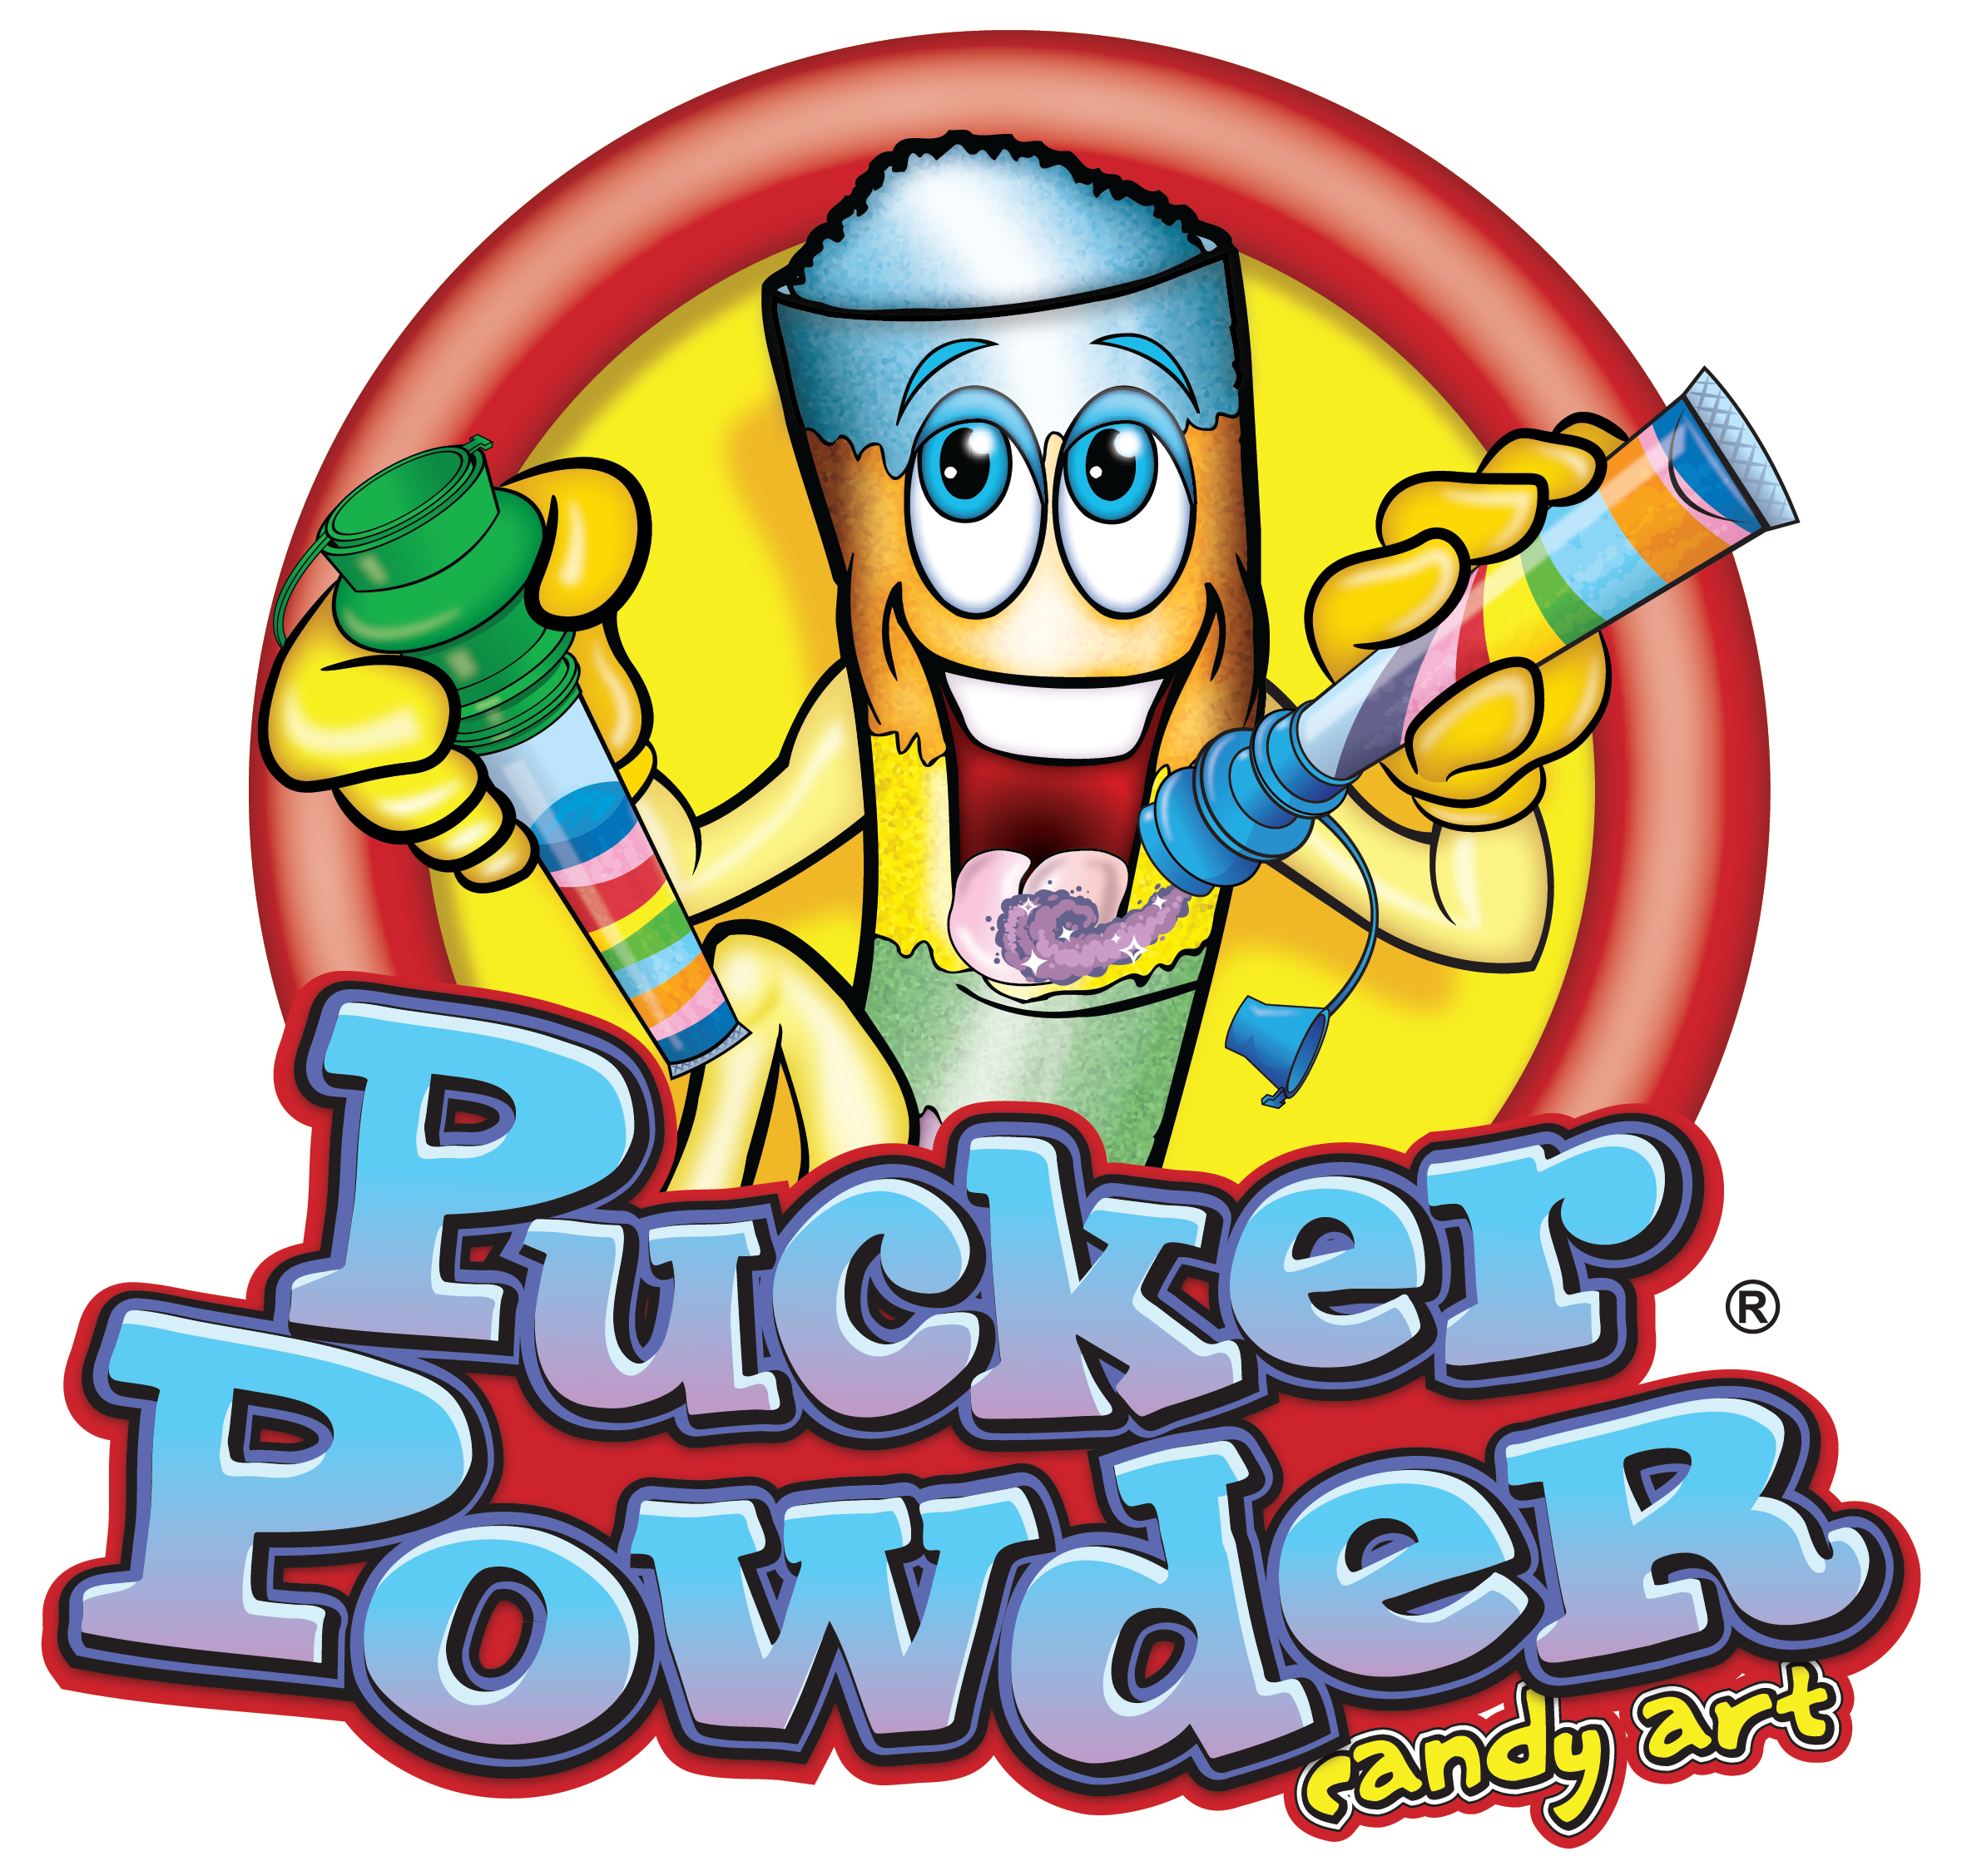 Pucker Powder Logo Pucker Powder Candy Art